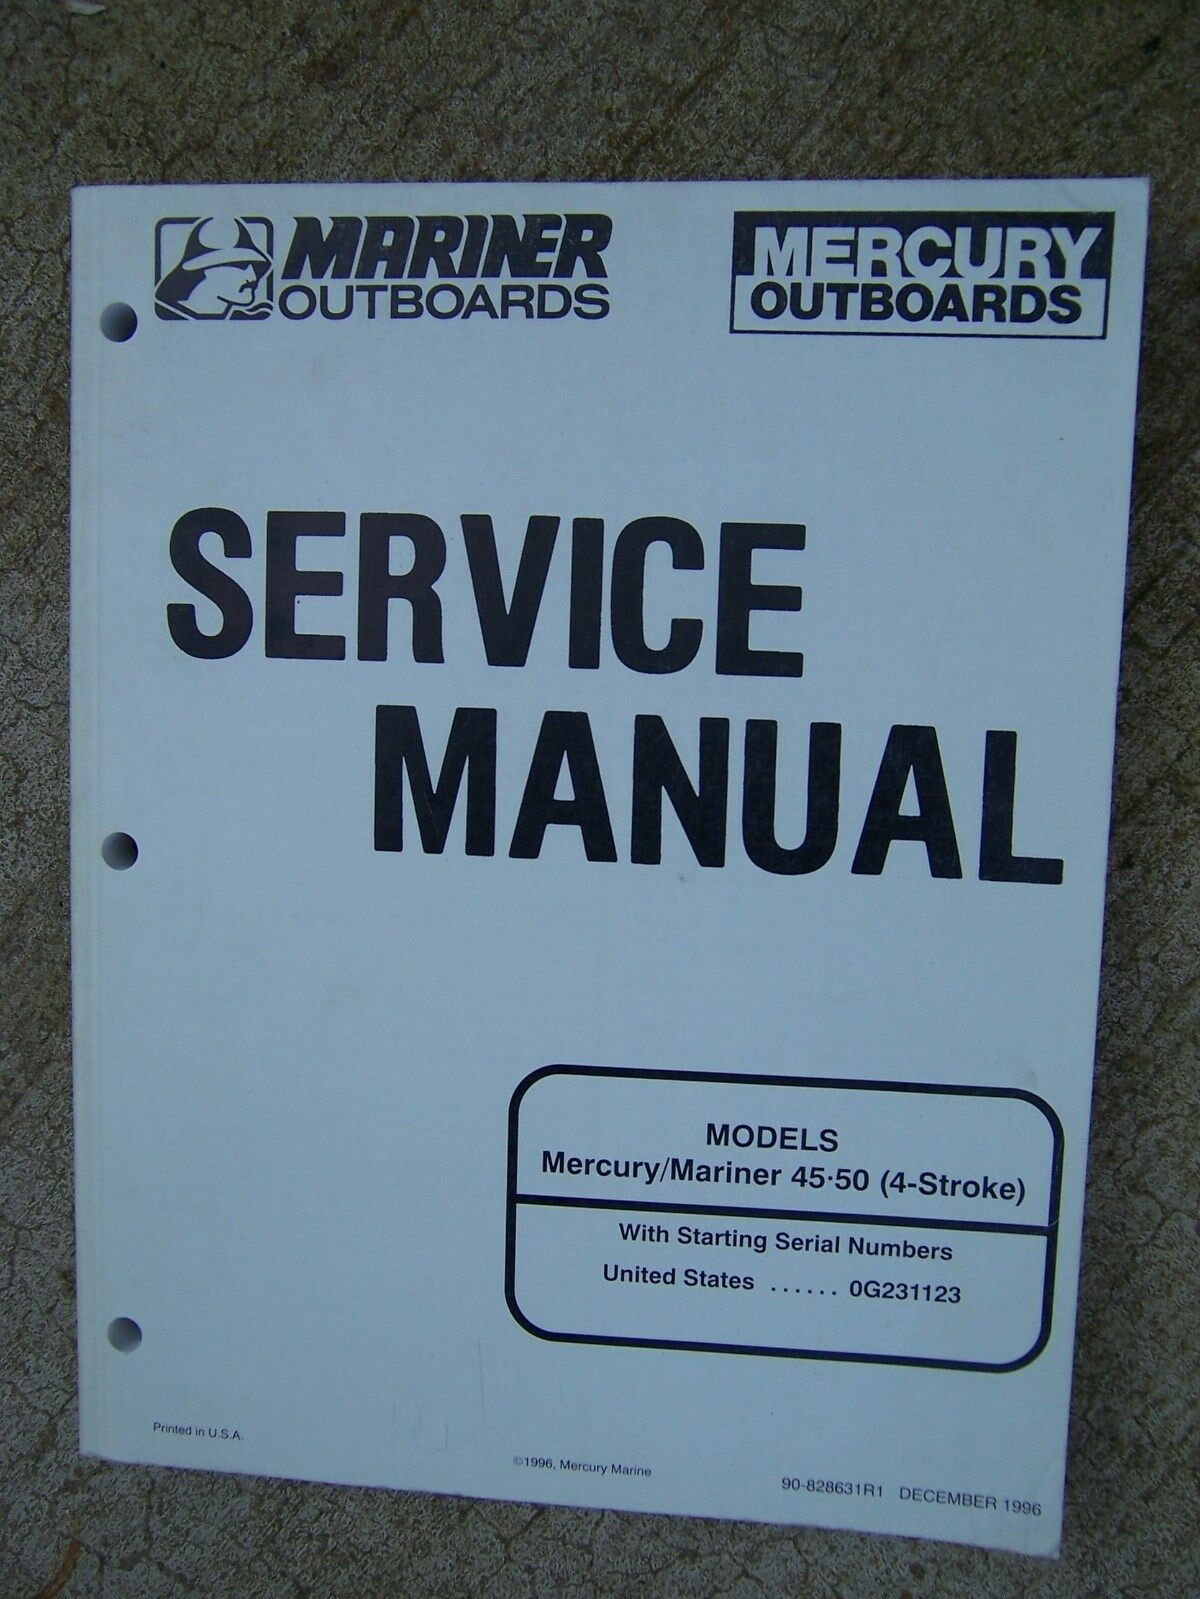 1997 Mariner Mercury Outboard Motor Service Manual 45 50 4 Stroke Models  Boat G 1 of 1Only 1 available ...